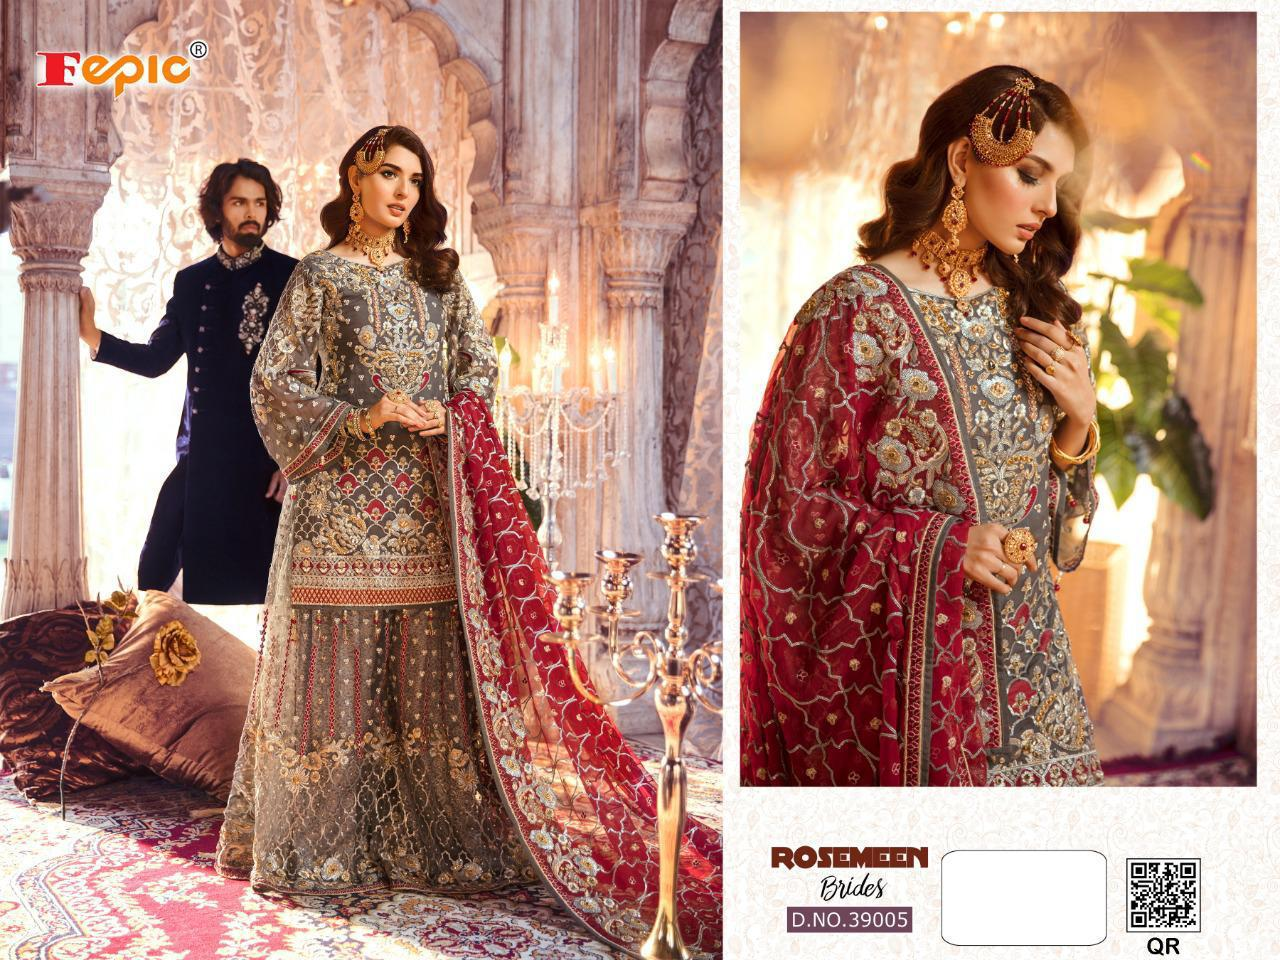 fepic-rosemeen-brides-design-no-39005